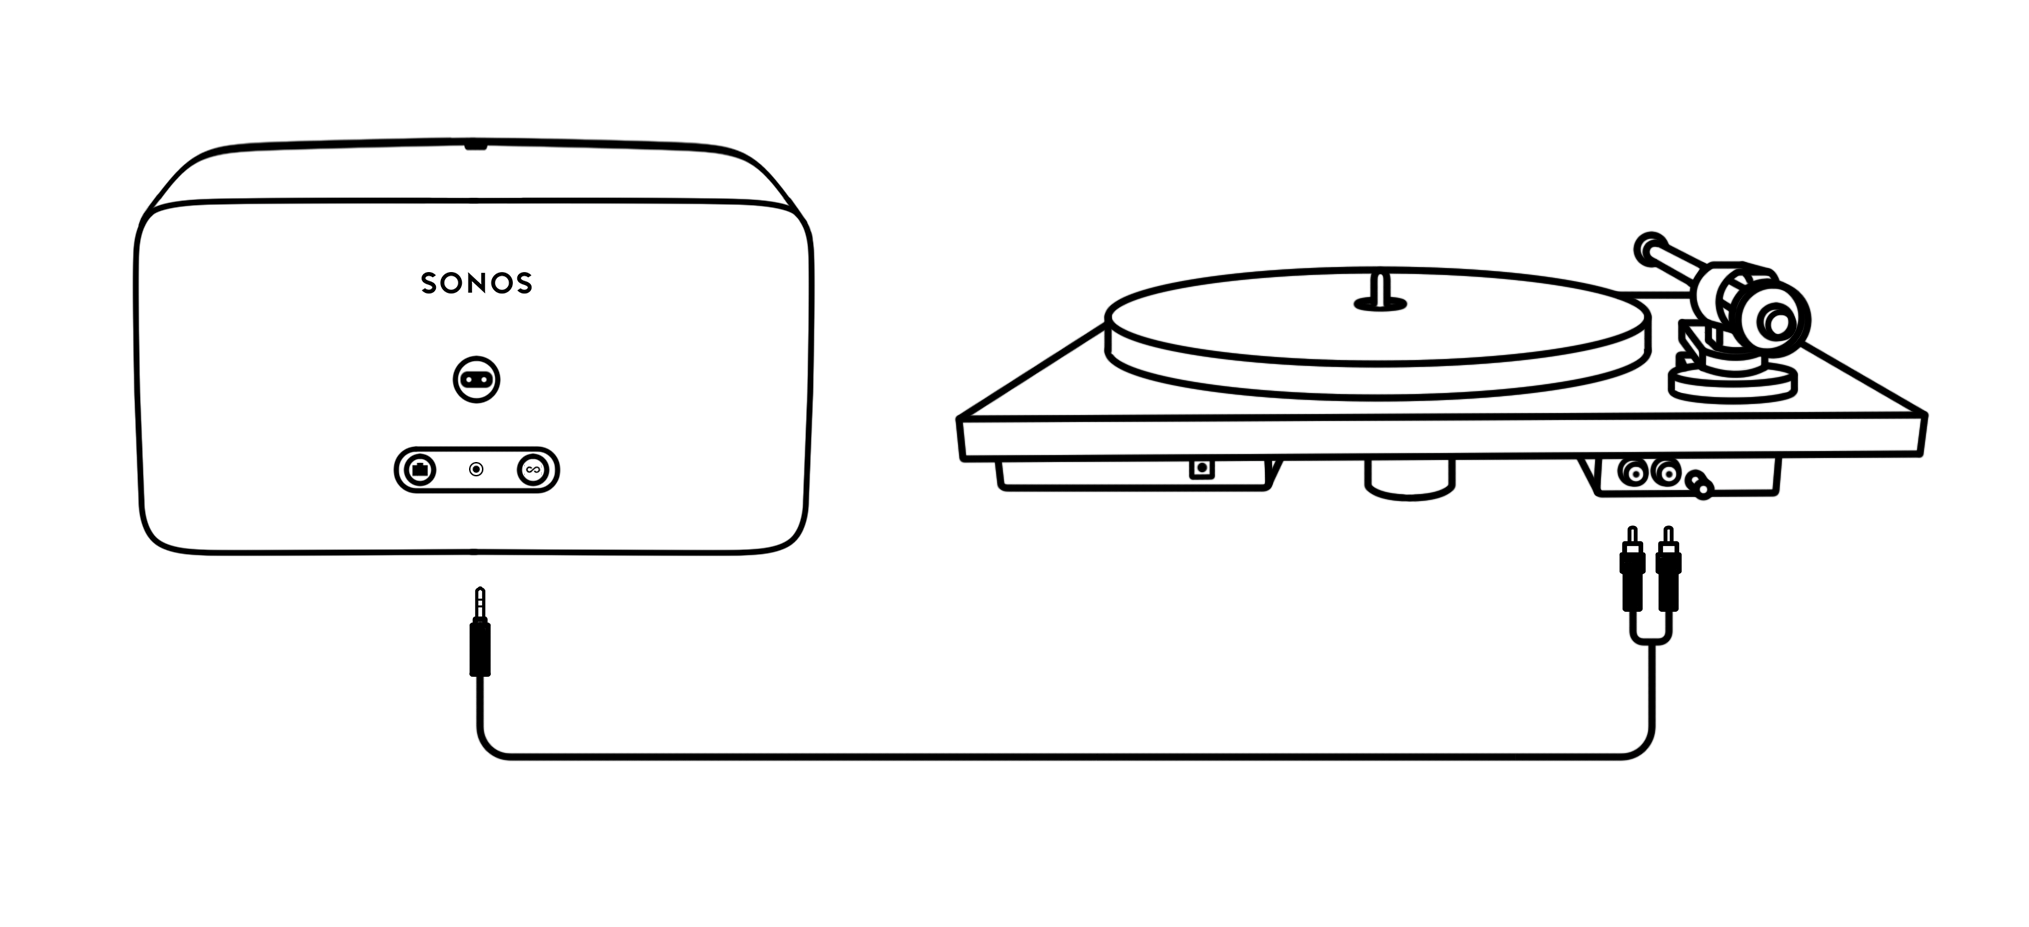 Sonos to Turntable connection